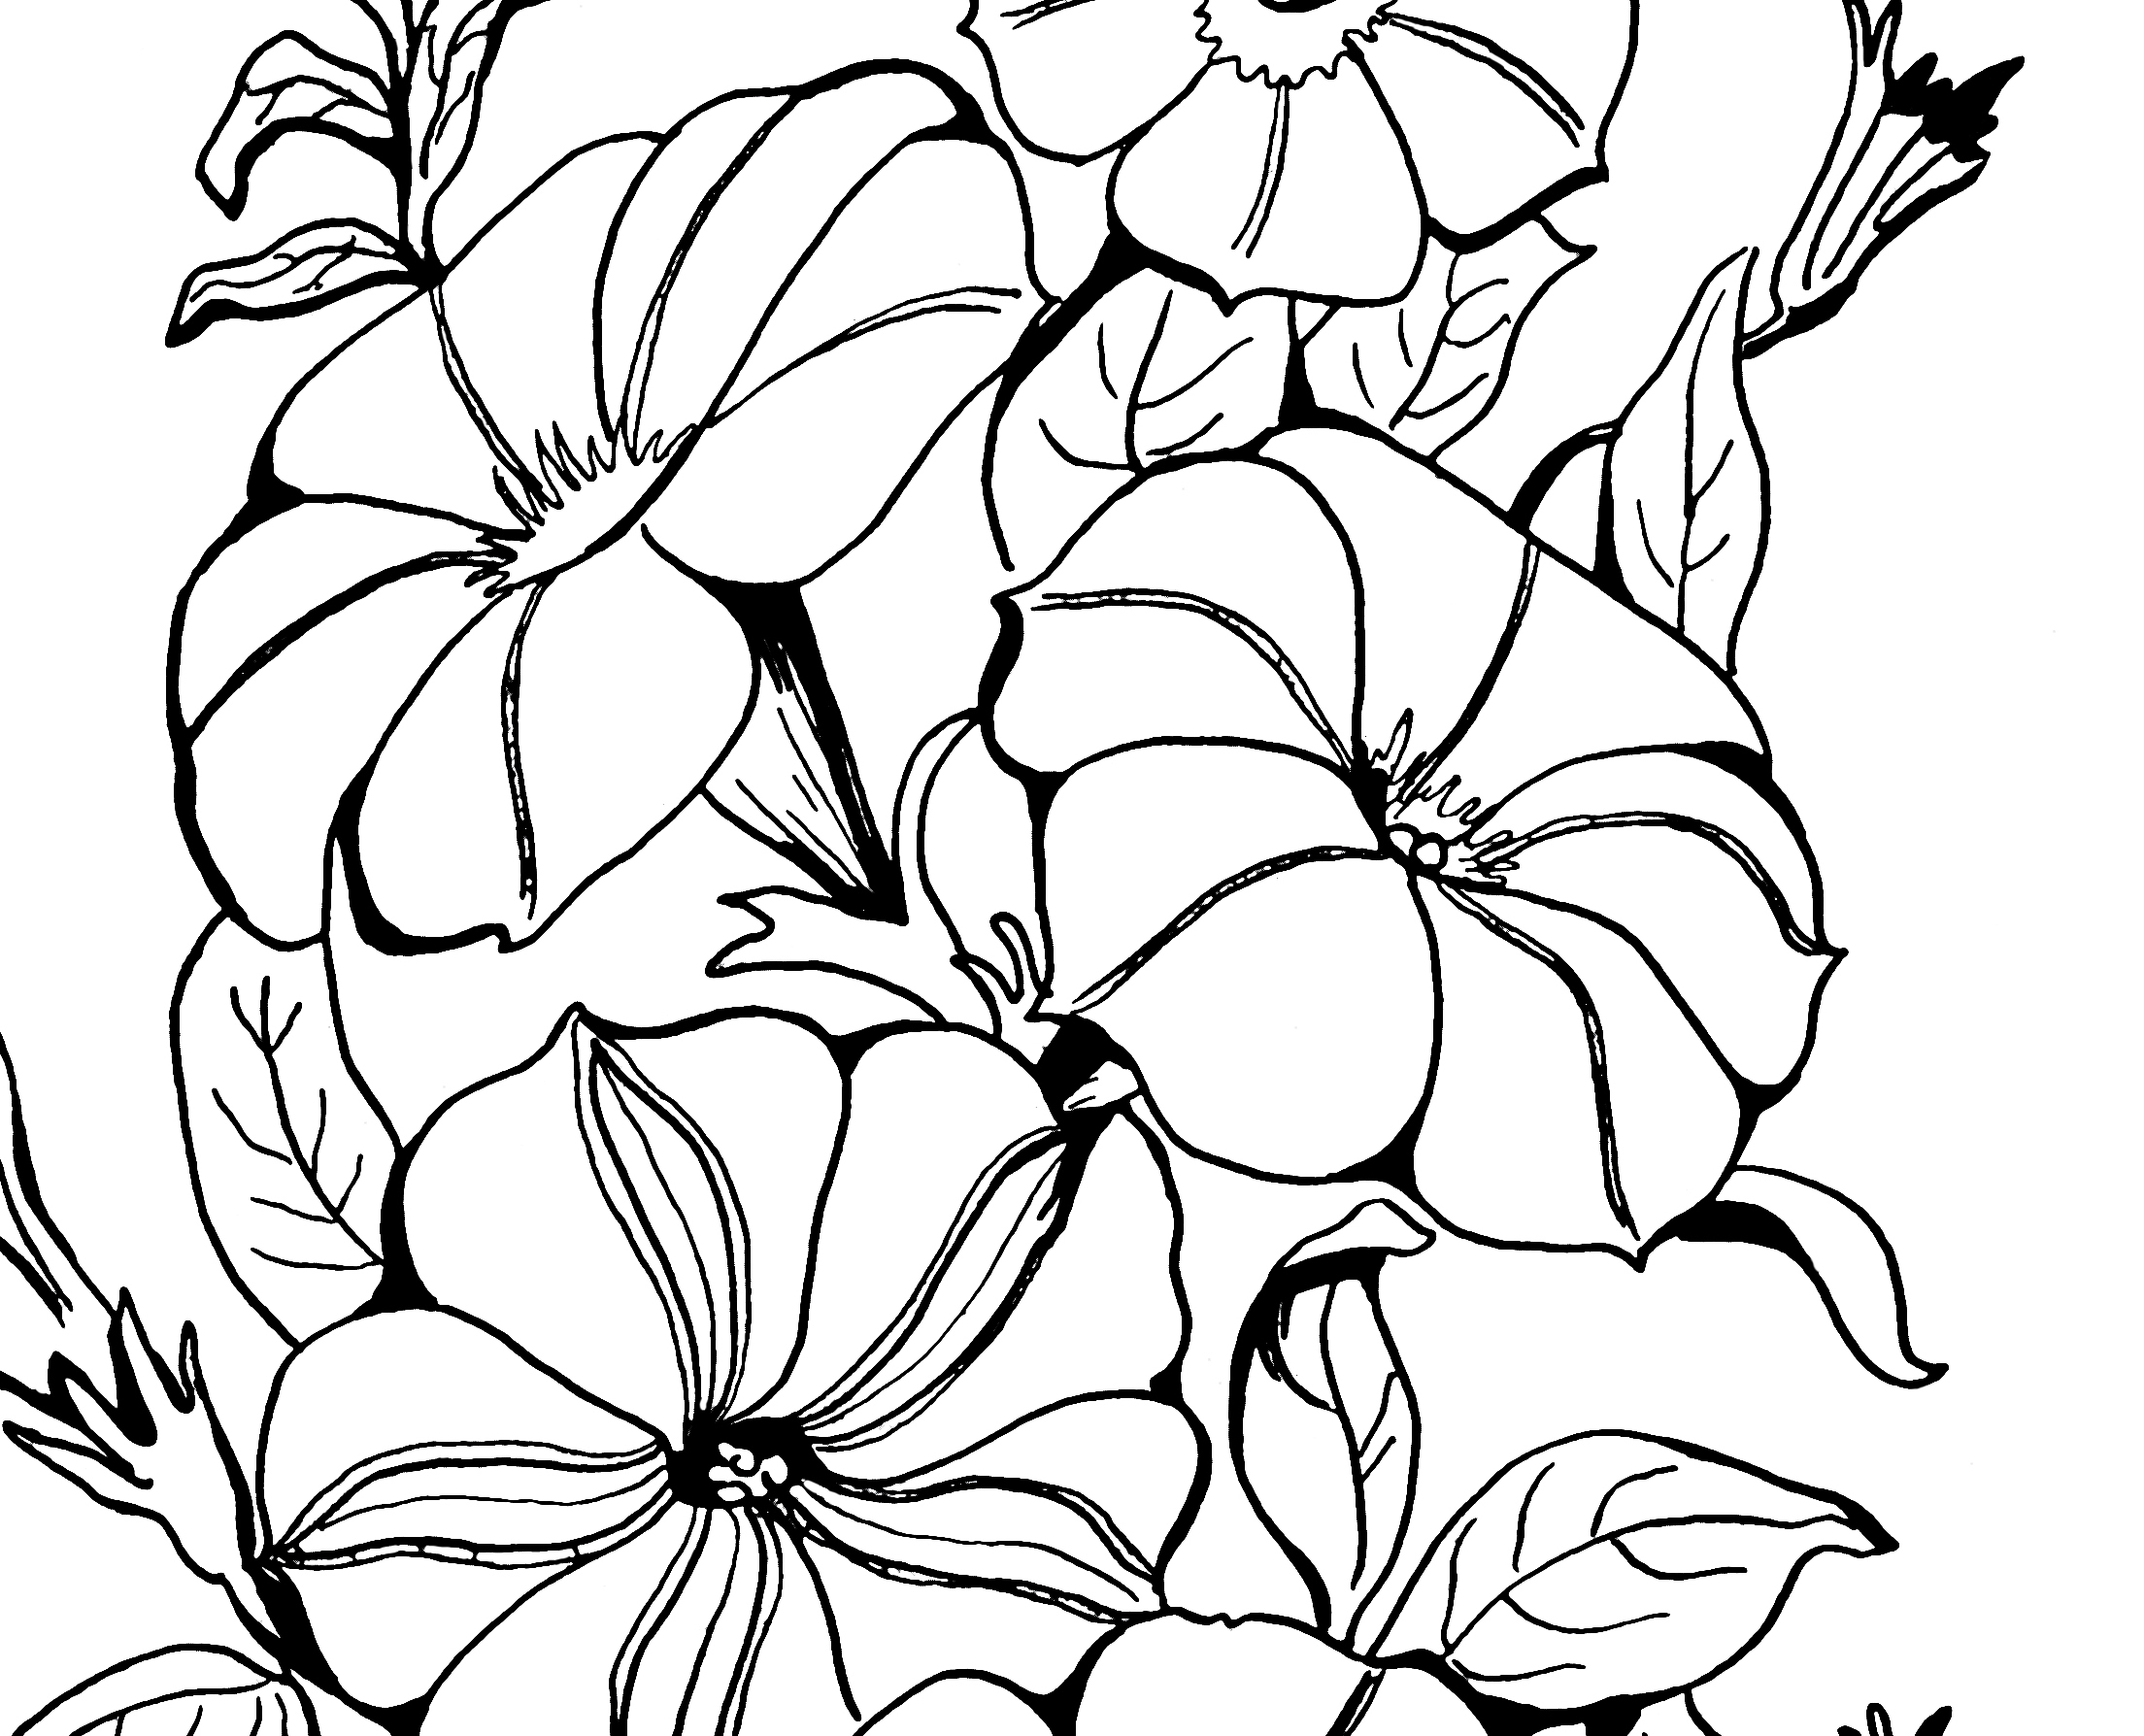 black and white coloring pages for adults 23 best images about abstract coloring pages on pinterest coloring white for adults pages and black